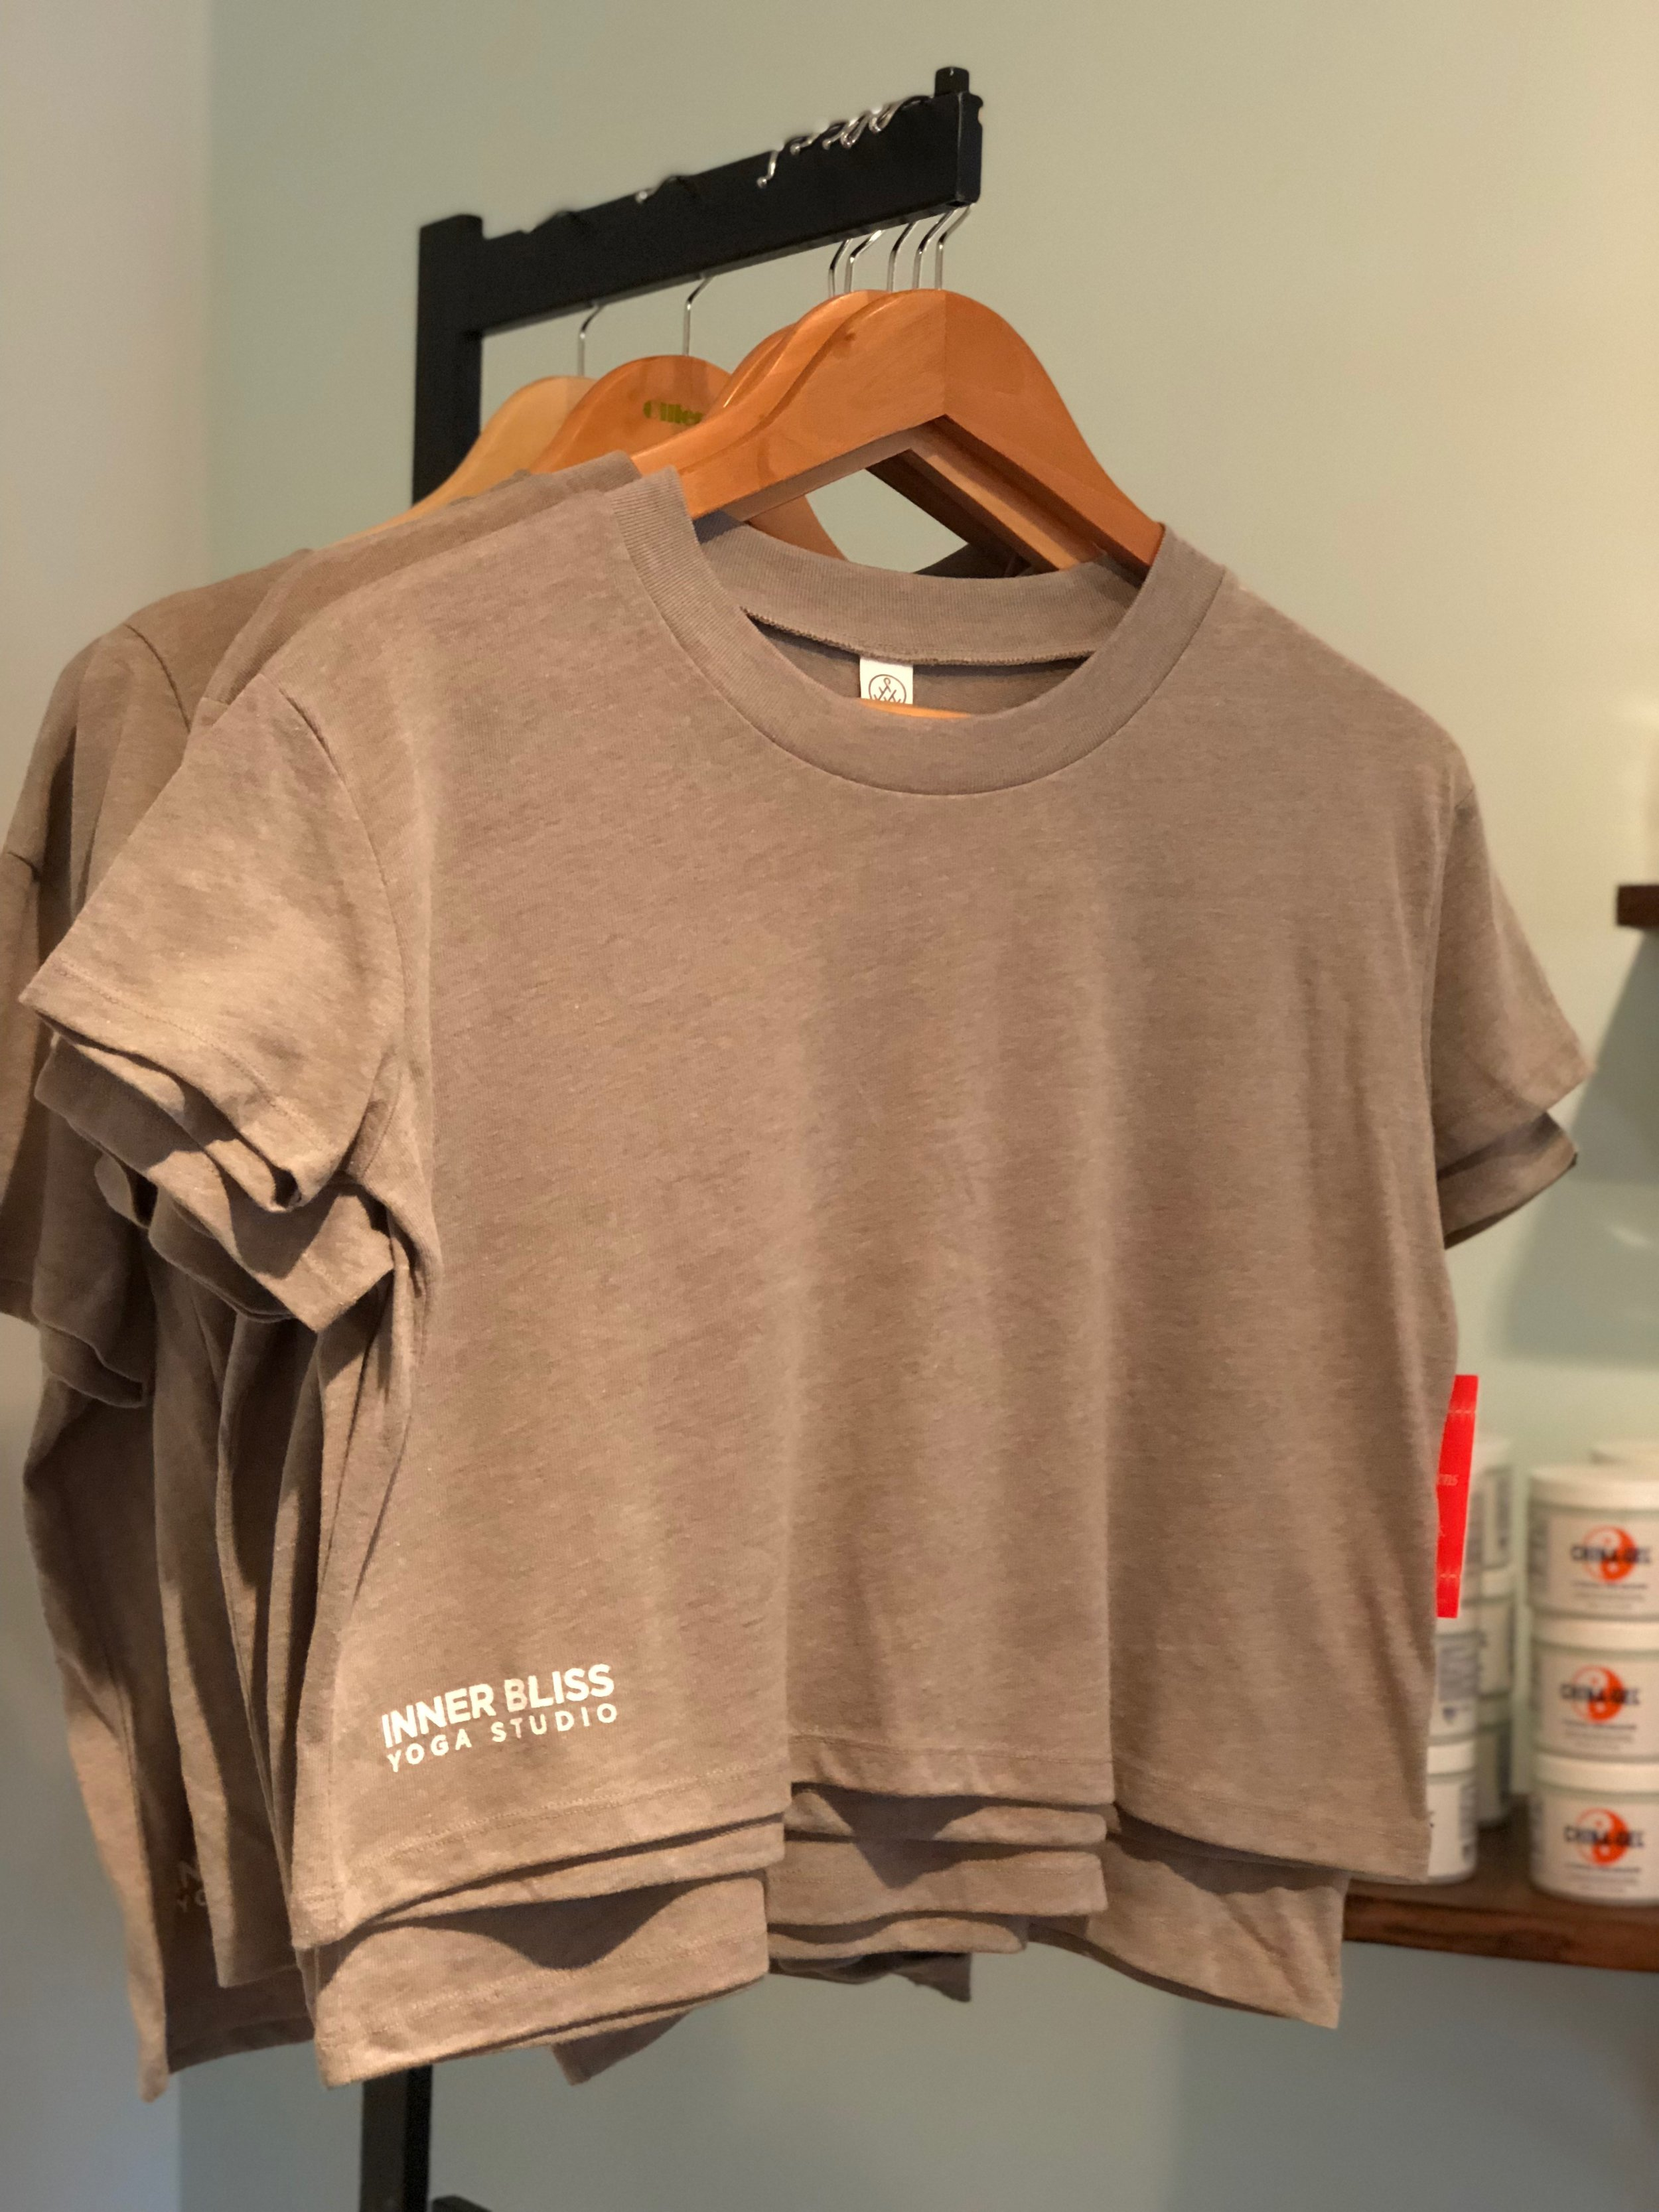 IBY Cropped T-Shirt in Smoke Grey $32